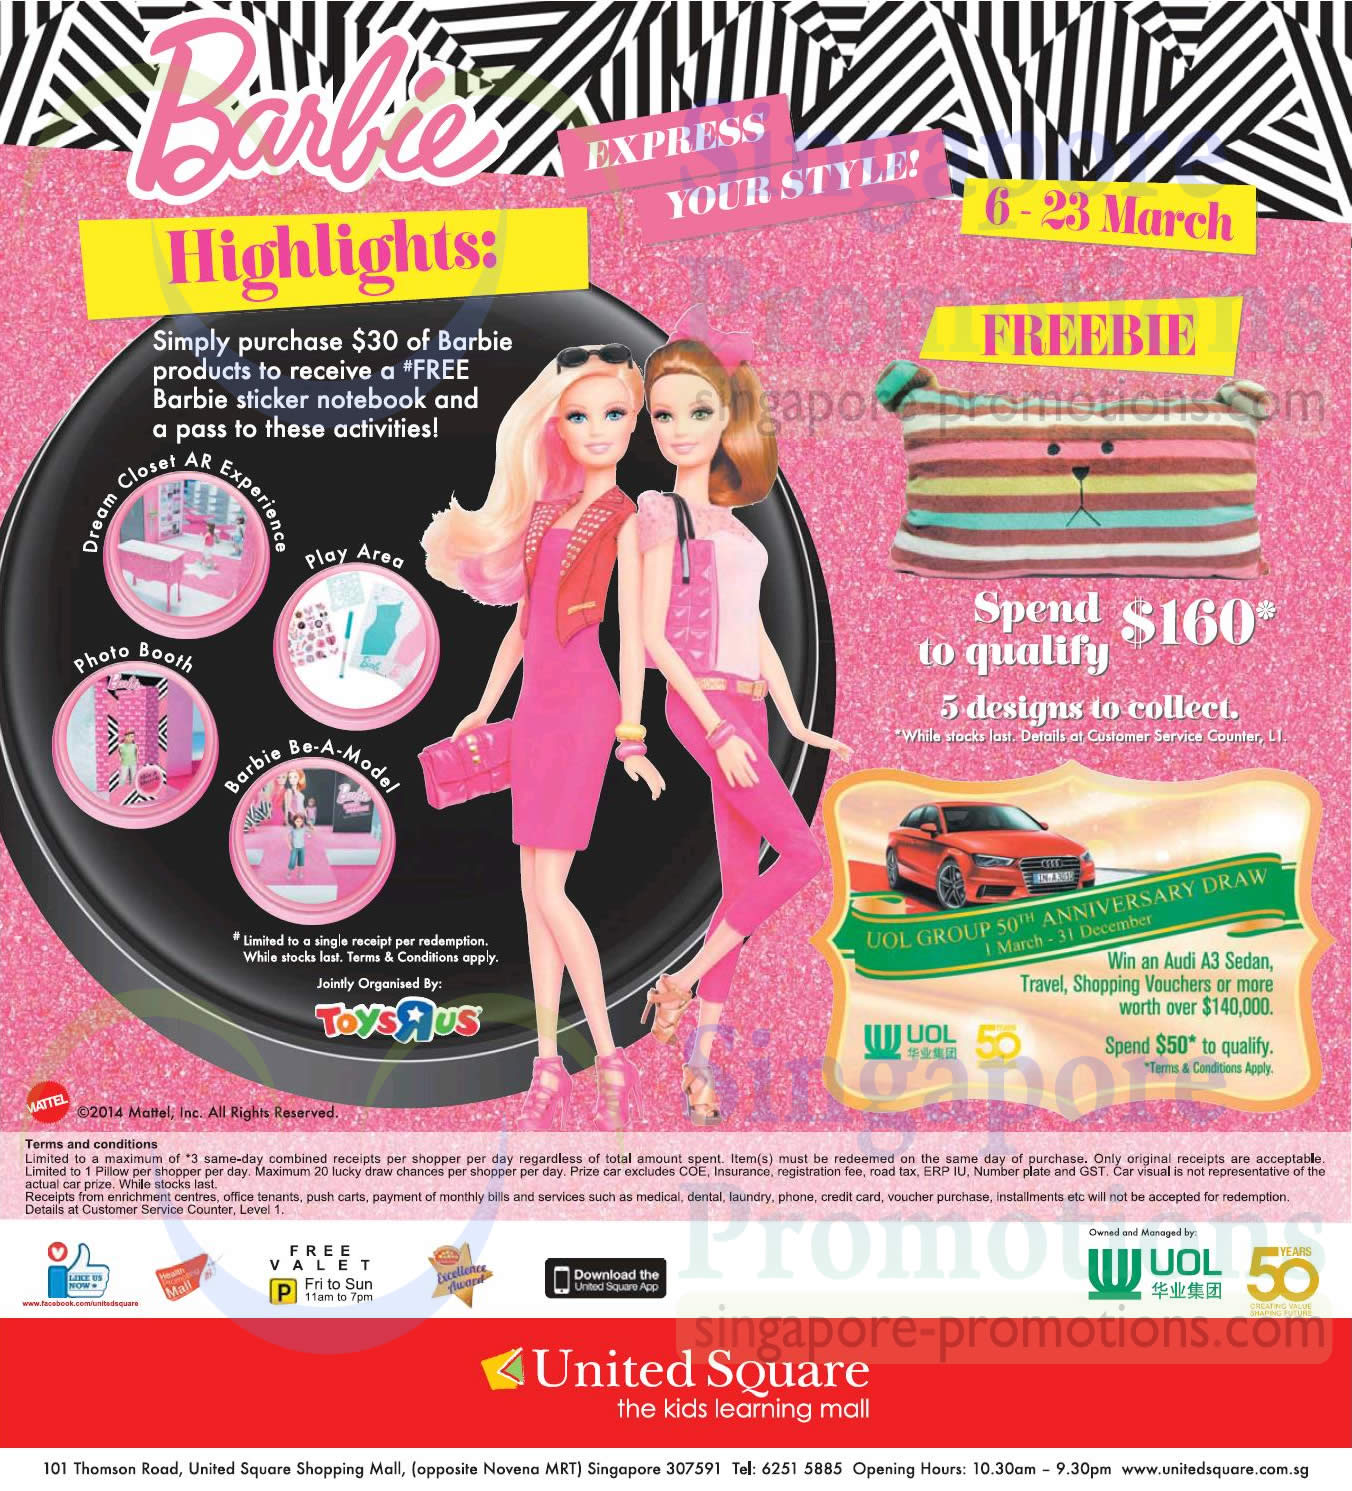 Barbie Highlights, Freebie, UOL Group 50th Anniversary Draw